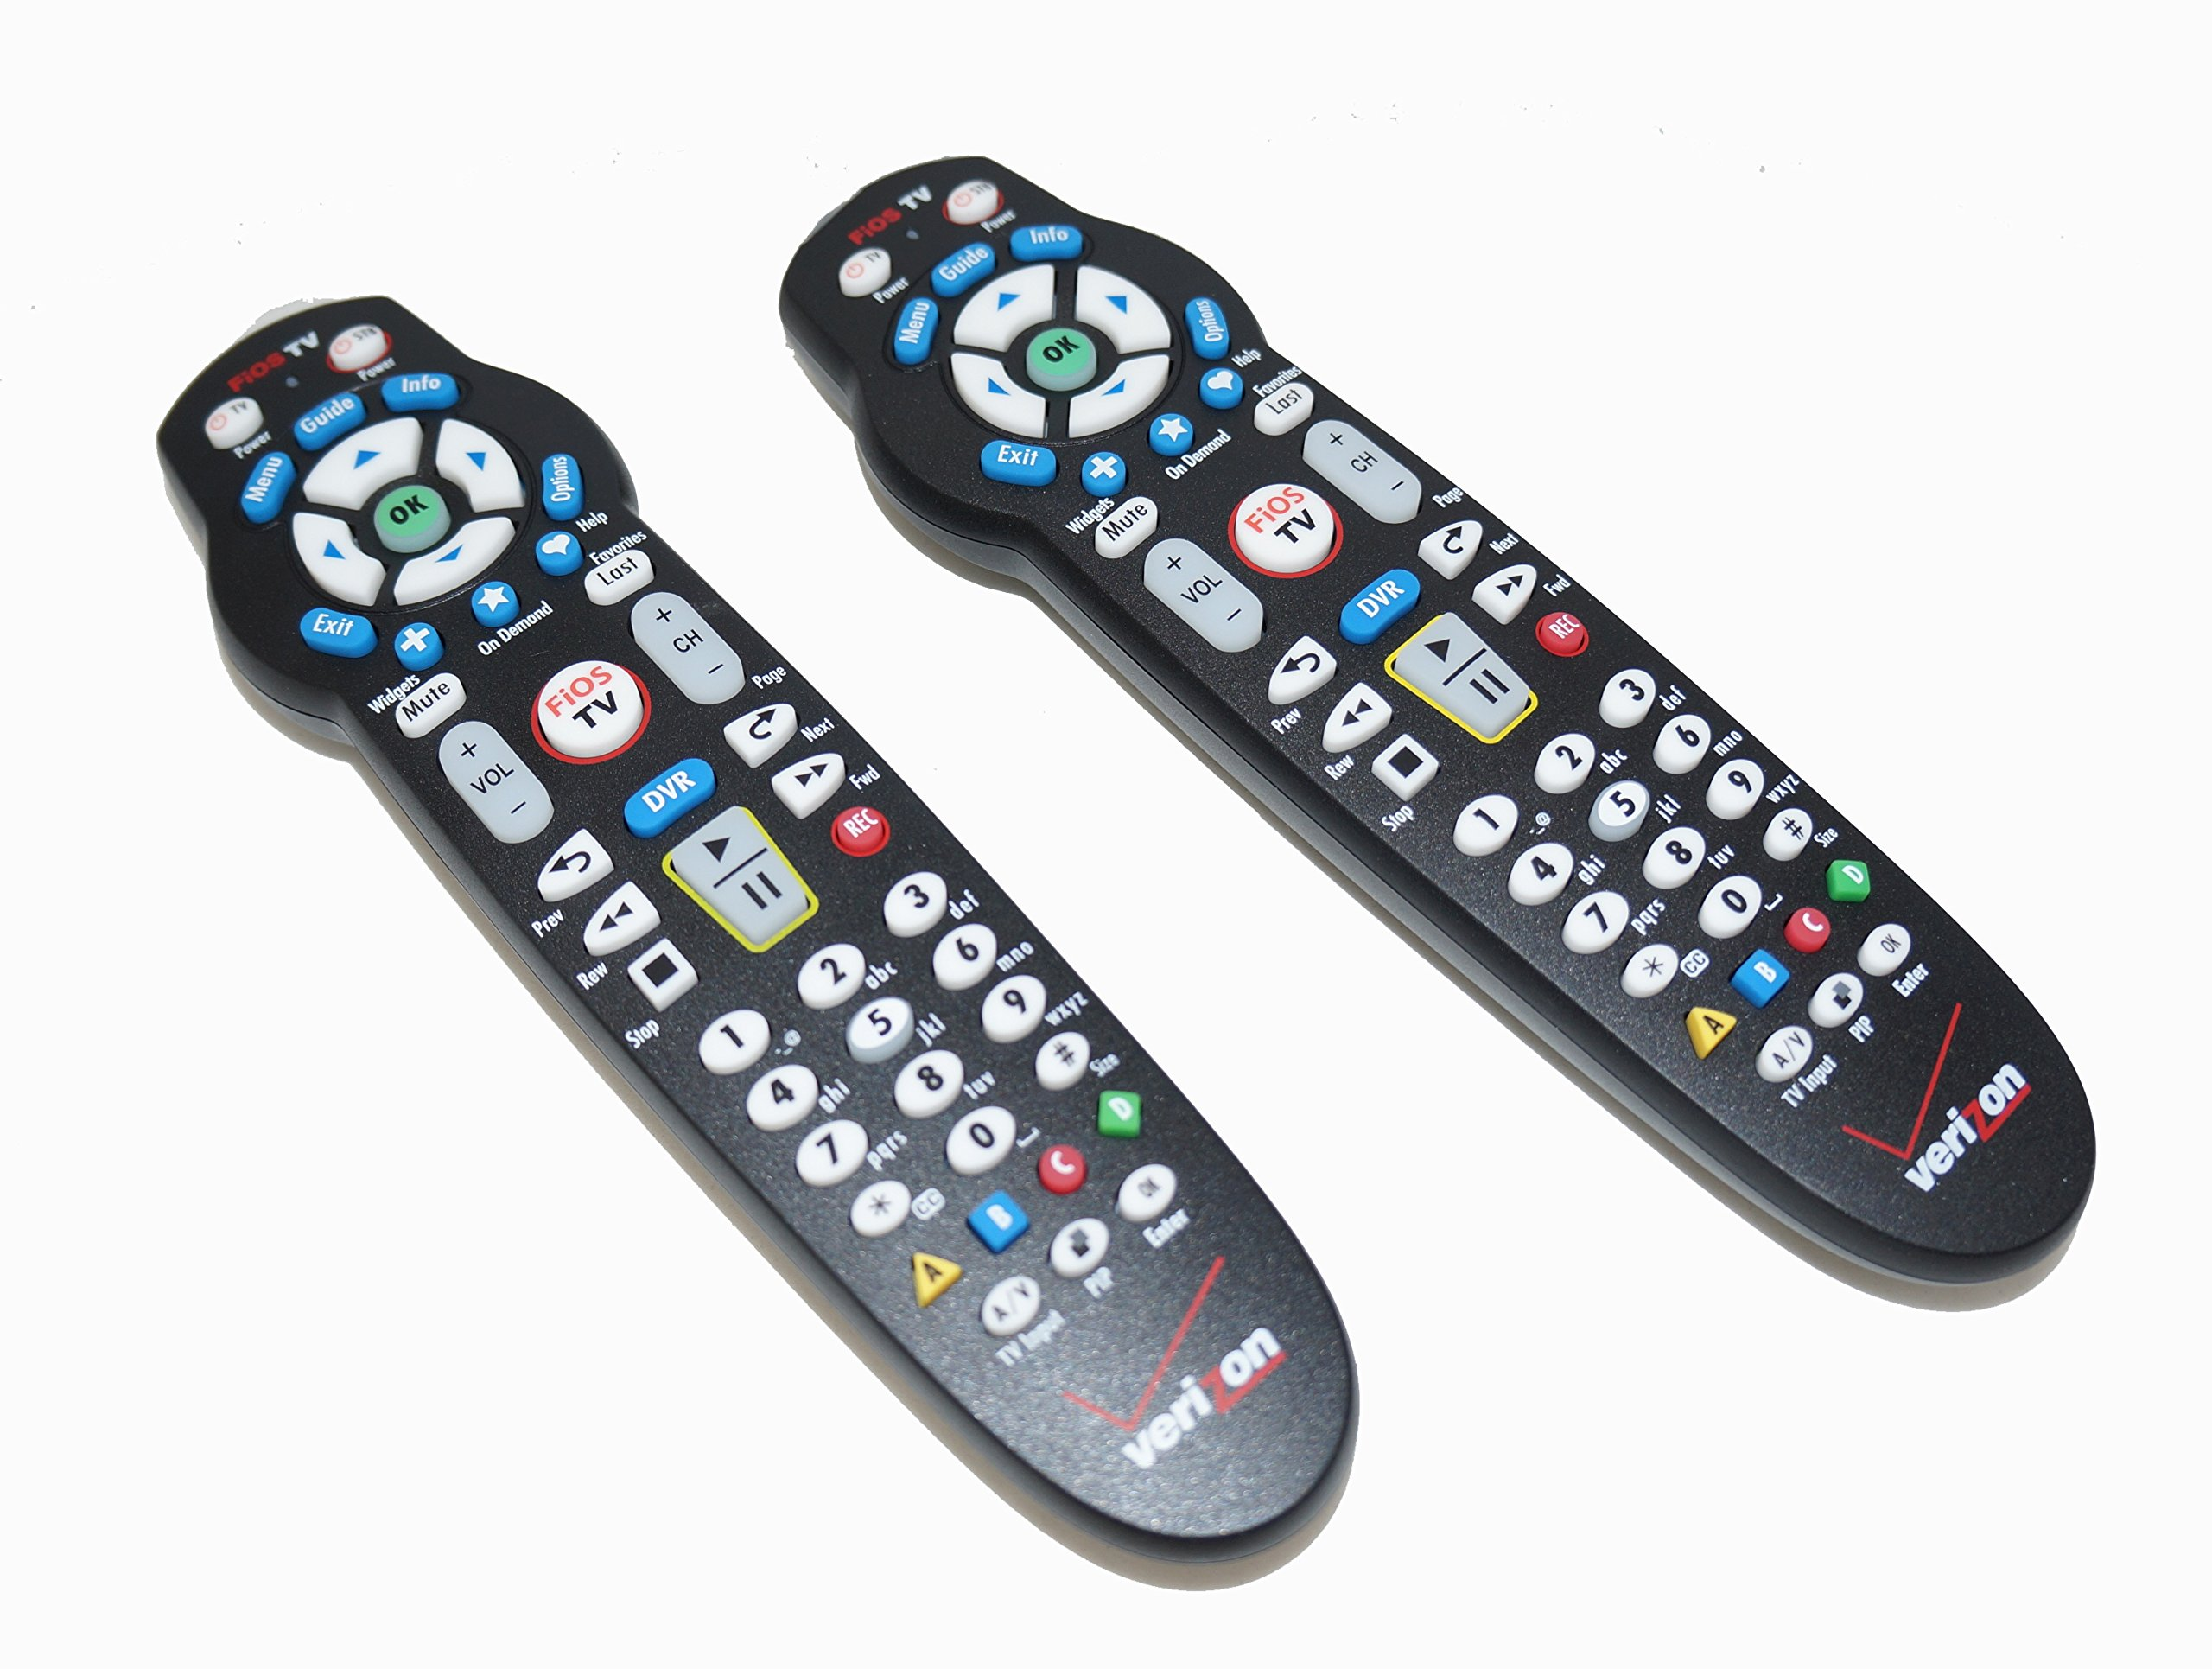 Set of TWO Verizon FiOS TV Replacement Remote Controls by Frontier works with Verizon FiOS systems by Verizon